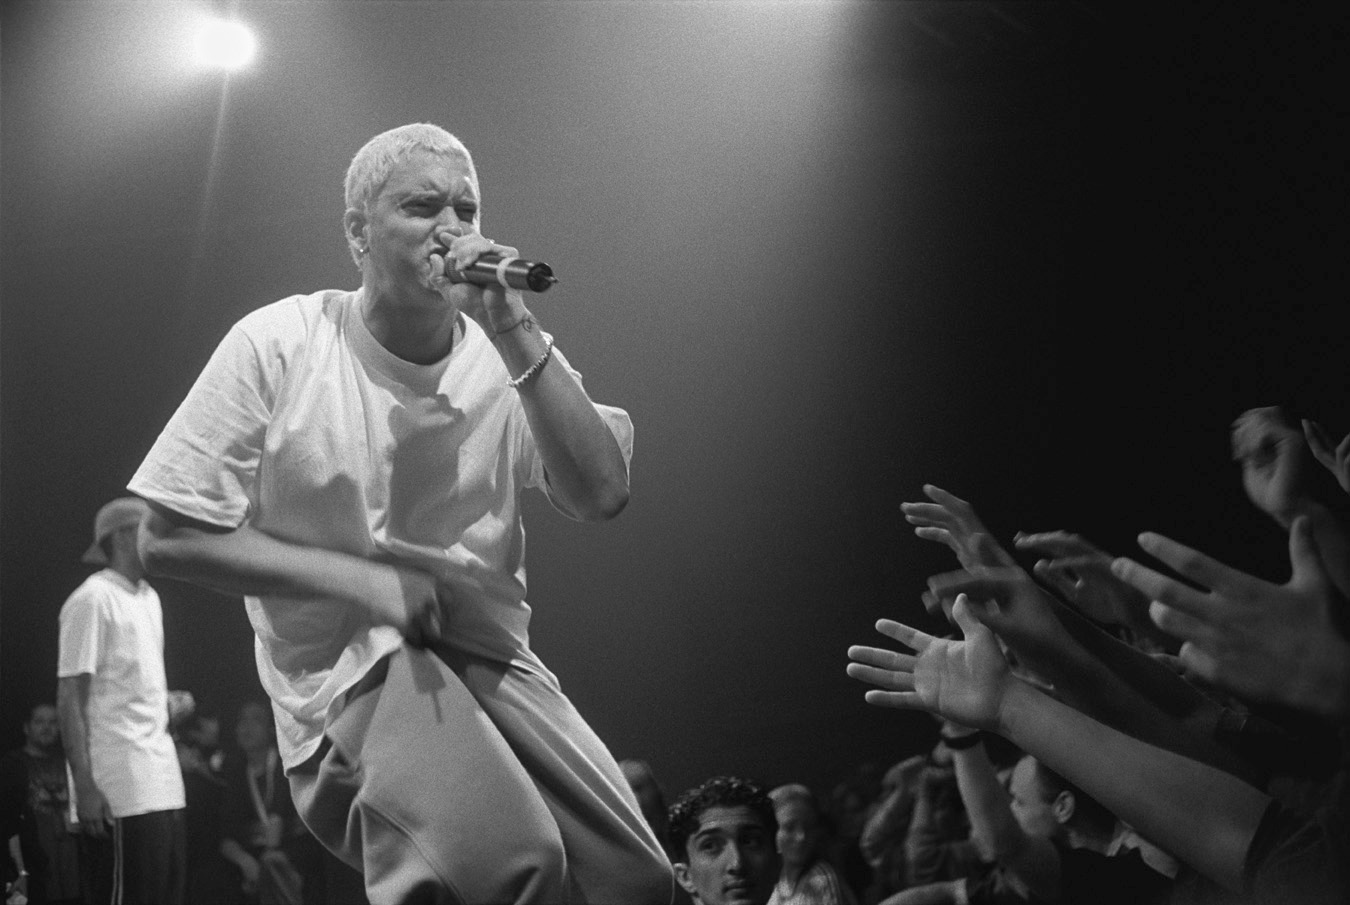 Photo of Eminem, performing in Germany in 1999, courtesy of Wikipedia Commons